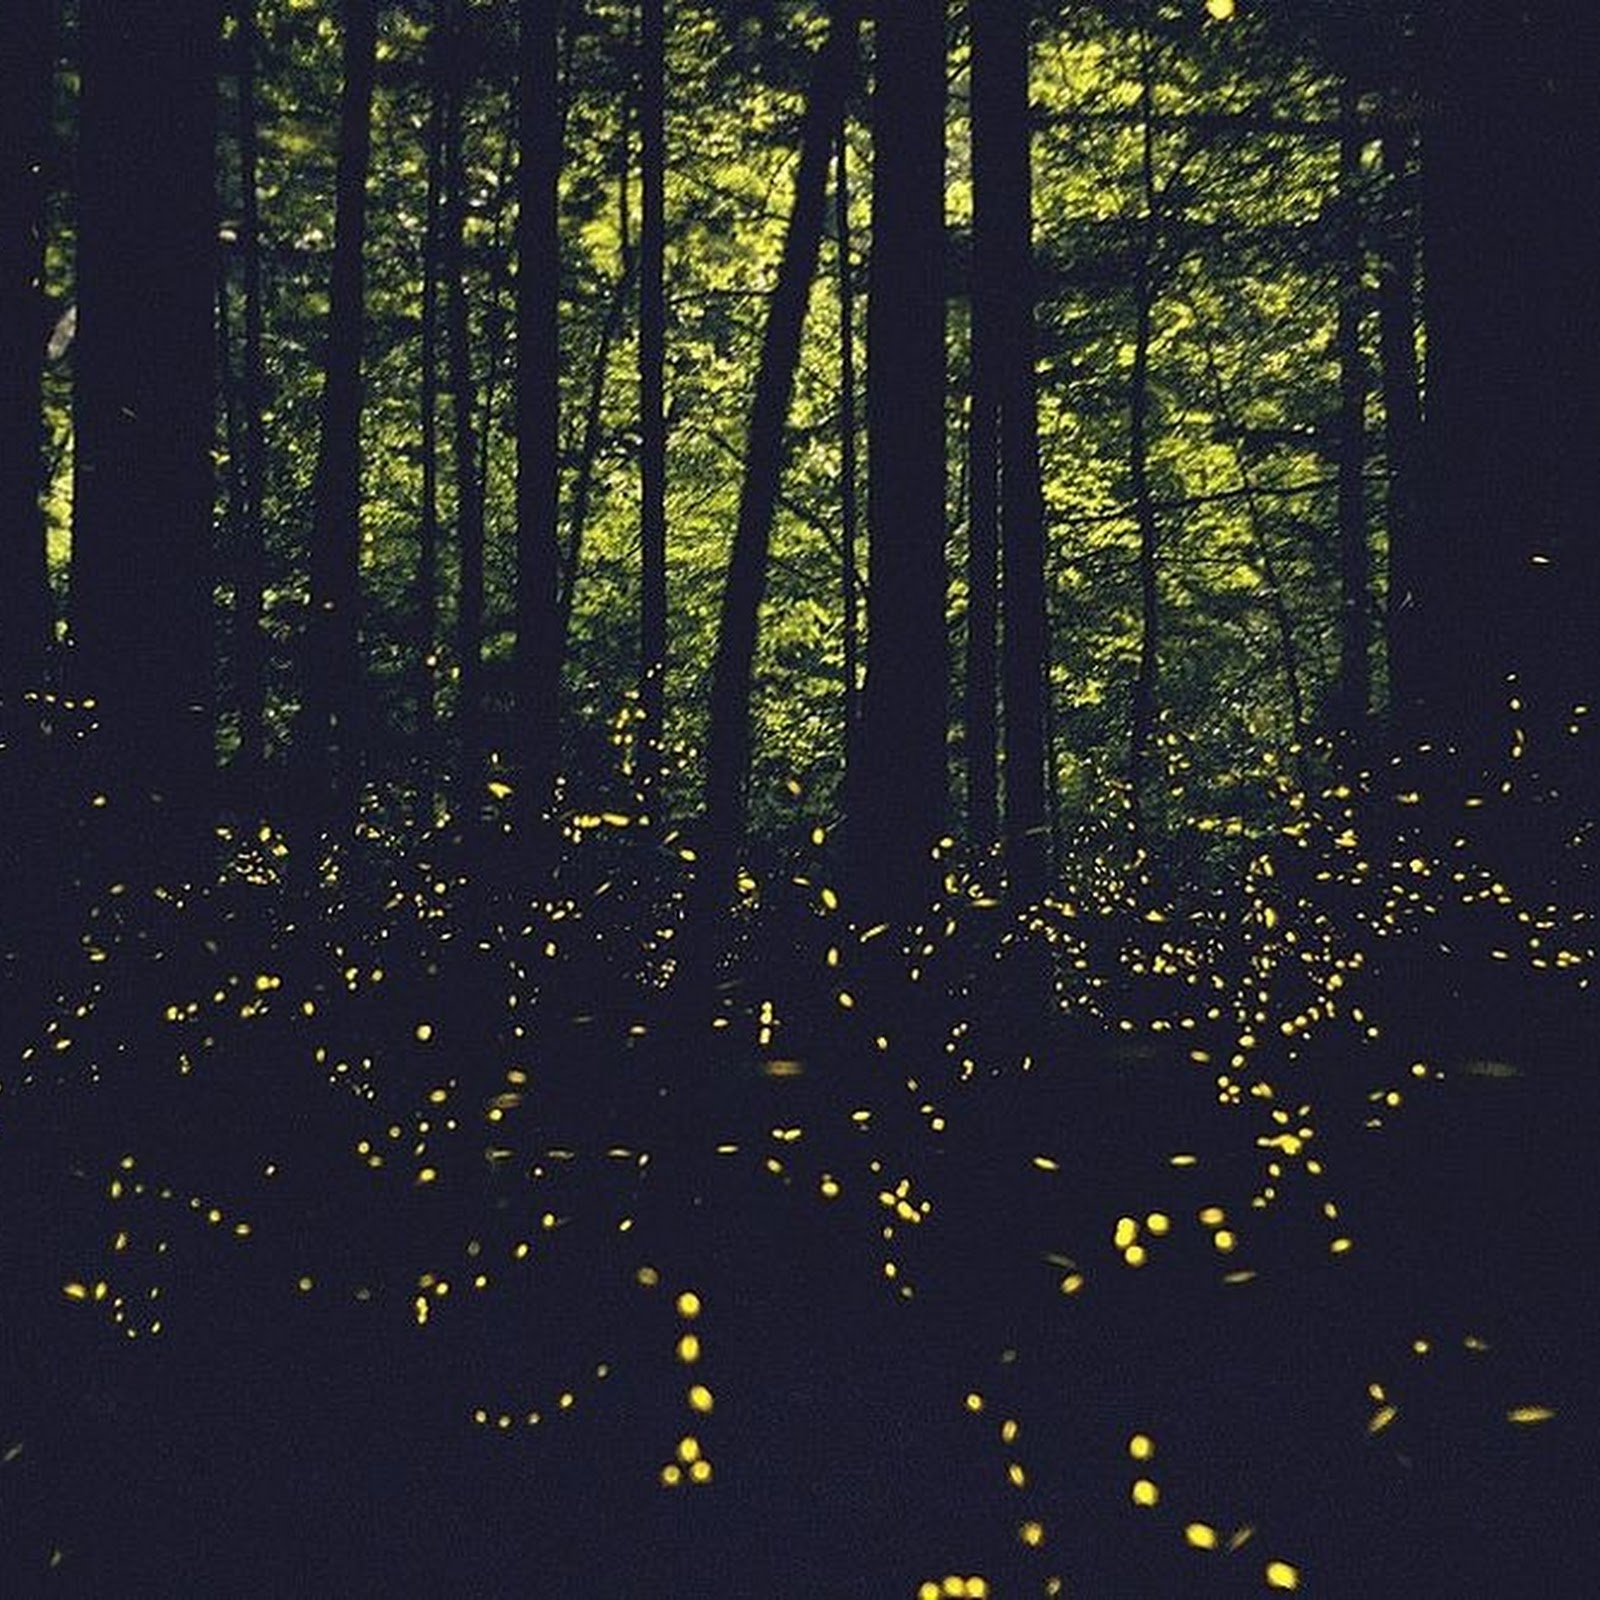 The Mystery of Synchronous Fireflies